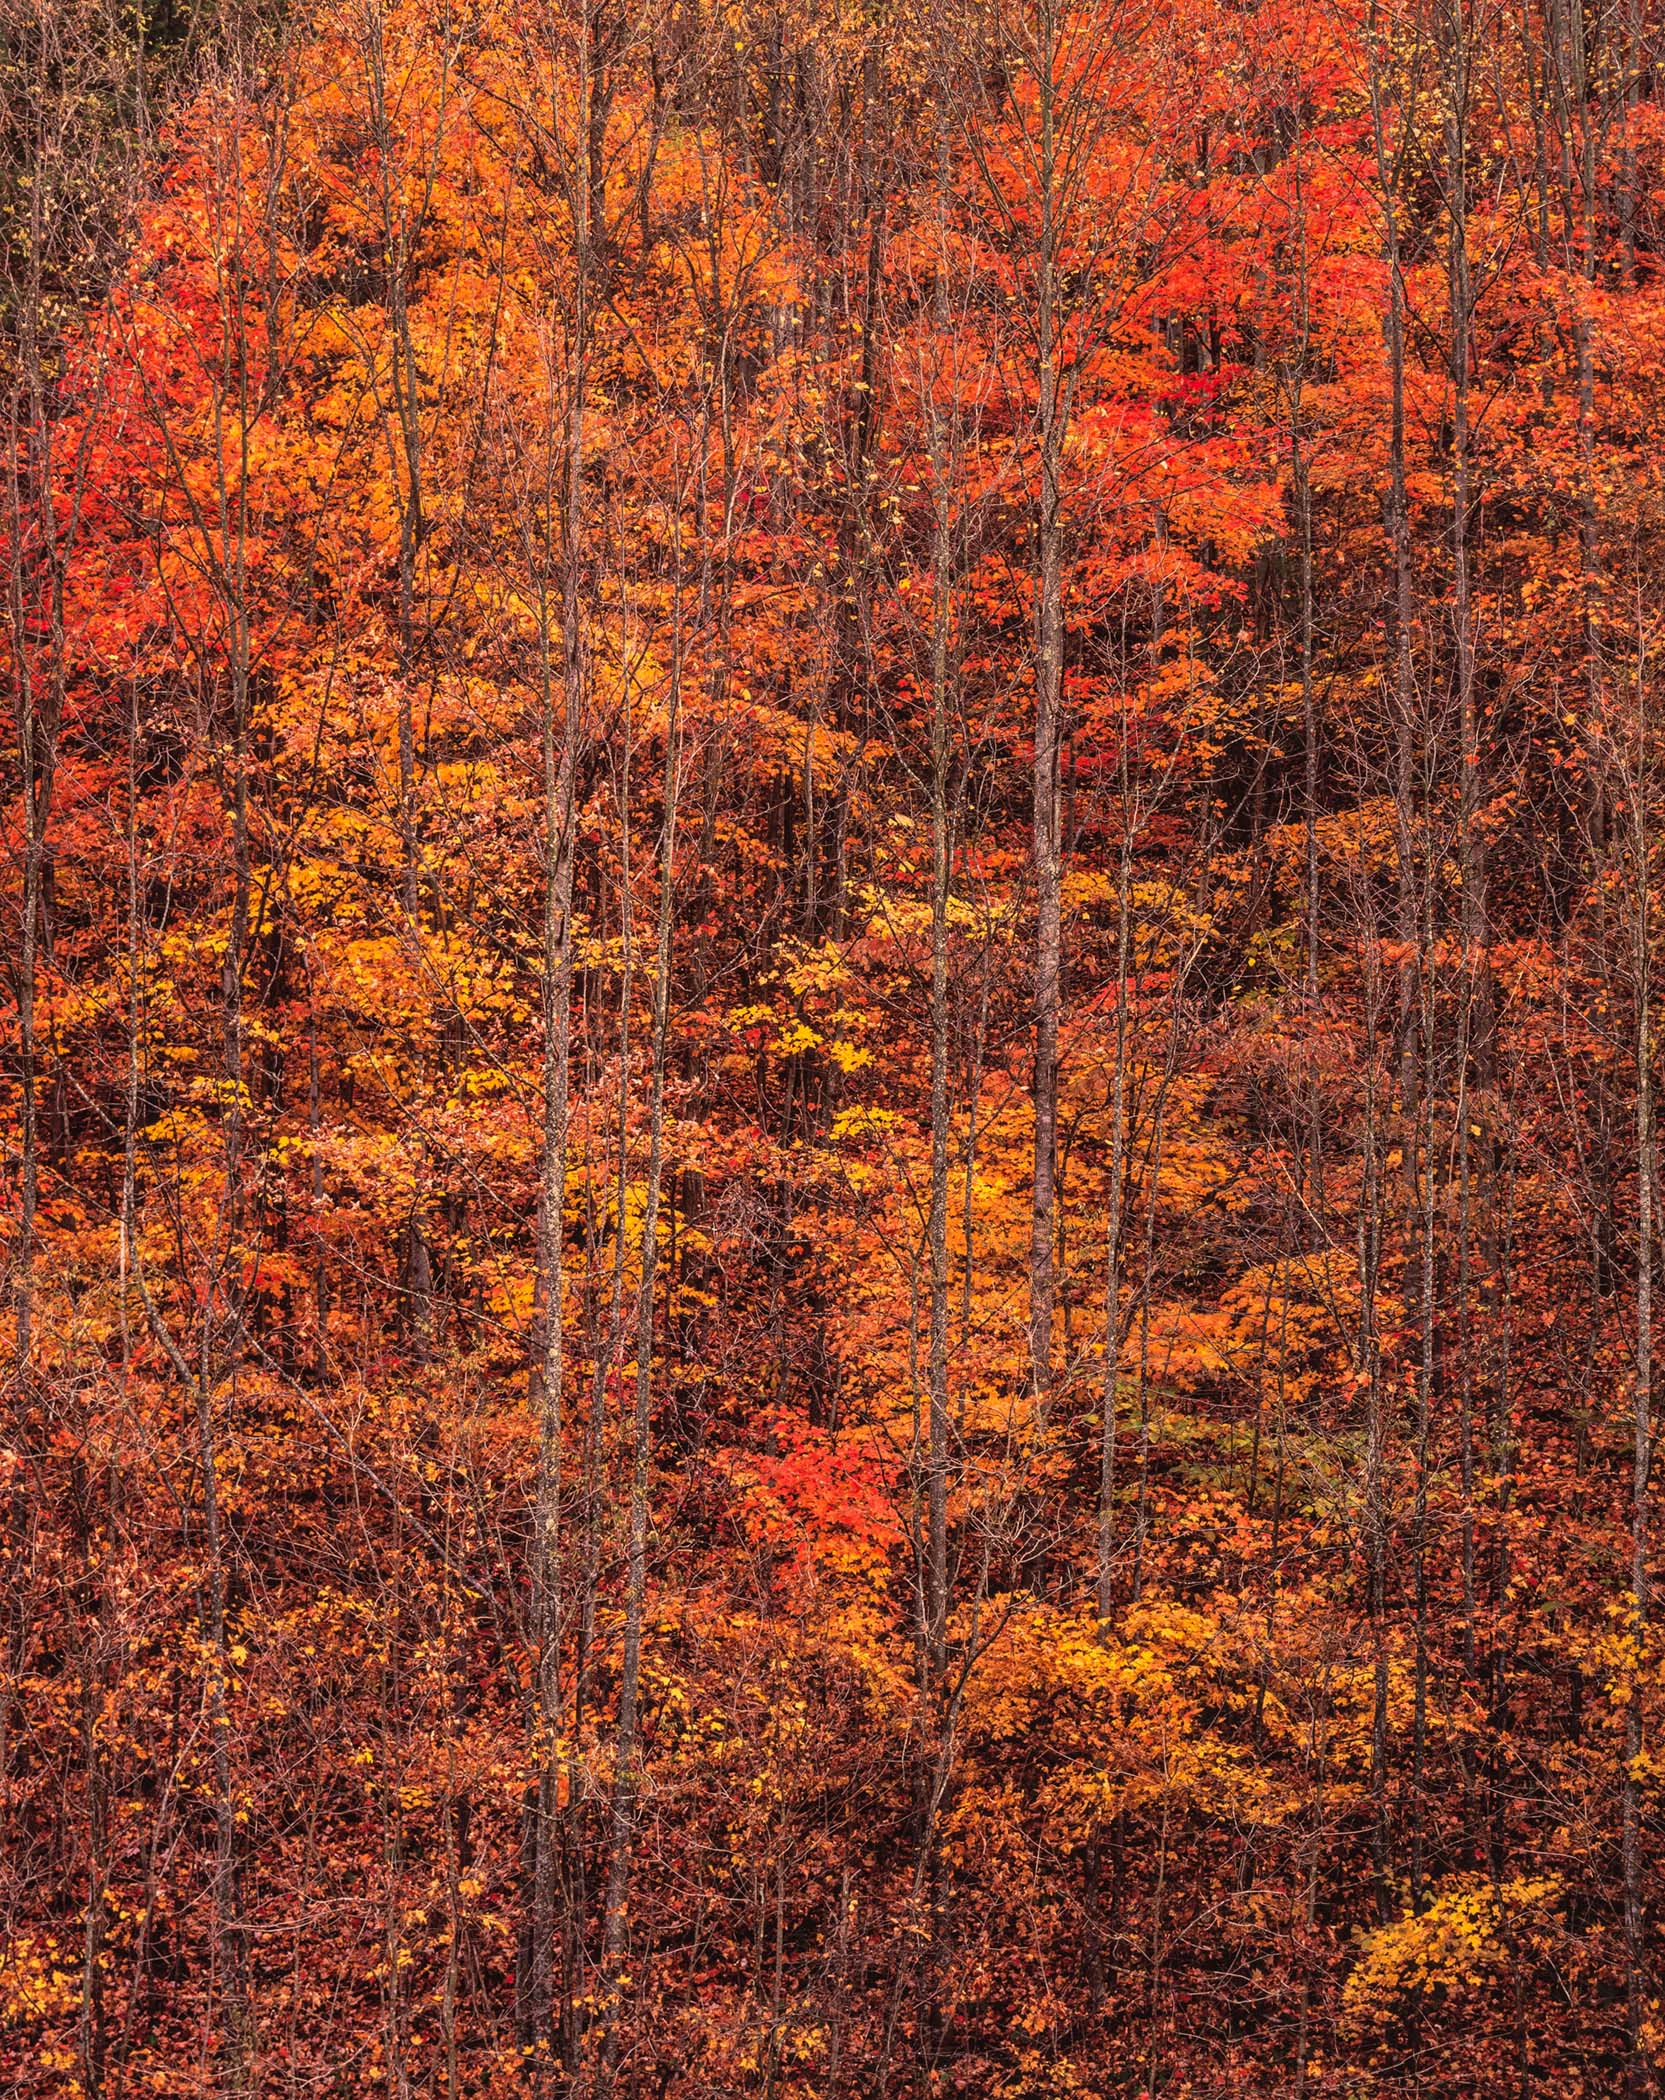 """Christopher Burkett   """"Autumn Forest Sunrise,""""West Virginia    Cibachrome Photograph     Available in 24"""" x 20"""", 40"""" x 30"""", and 50"""" x 40"""""""